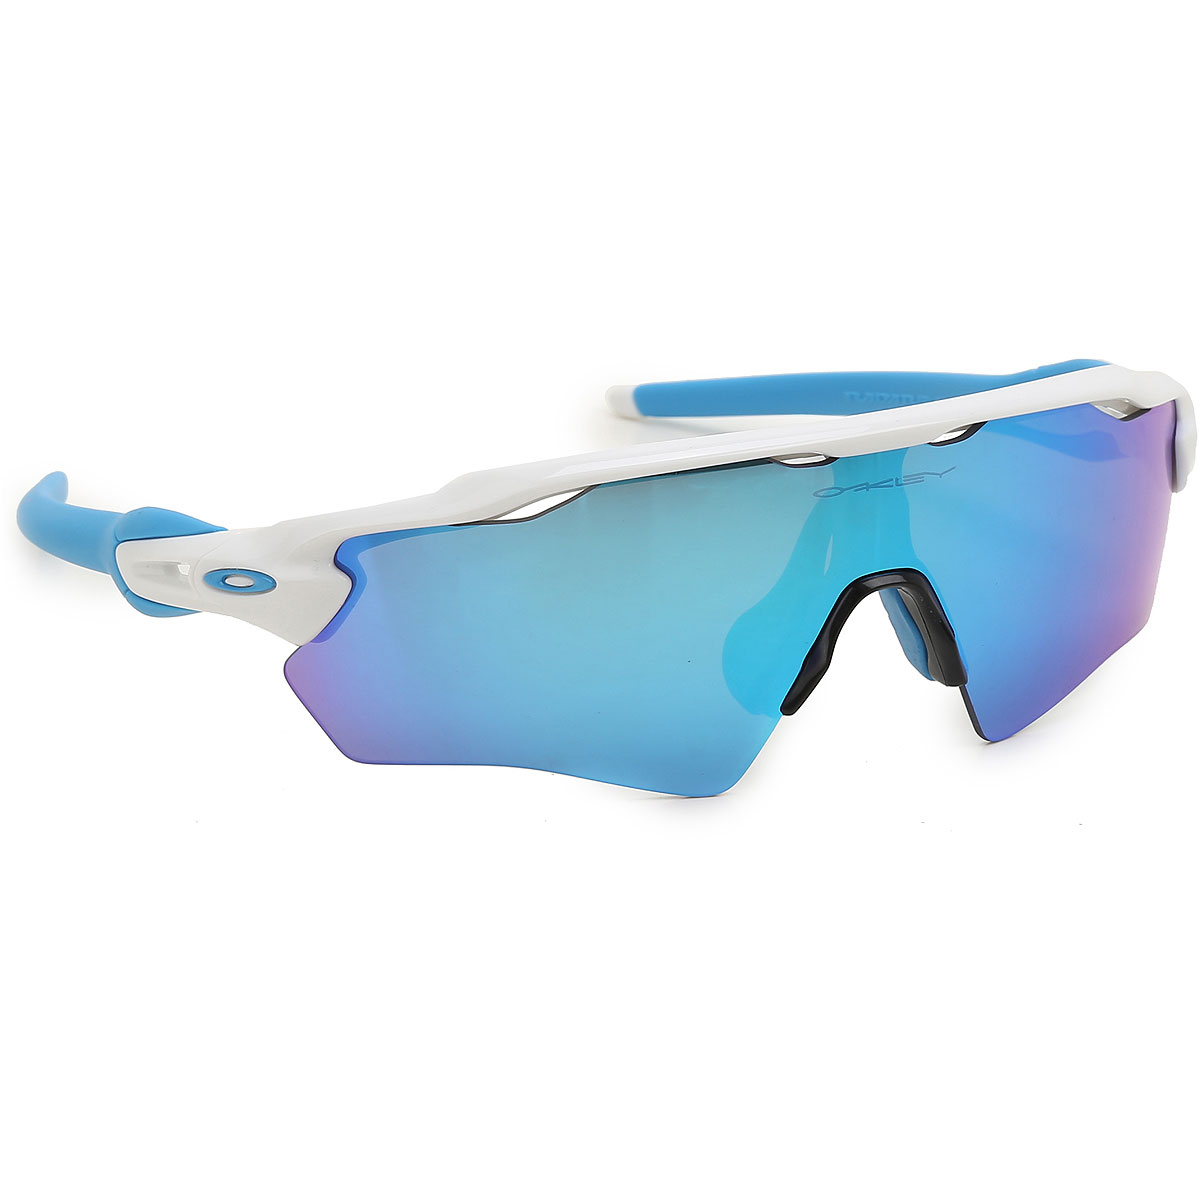 Image of Oakley Kids Sunglasses for Boys On Sale in Outlet, White, 2017